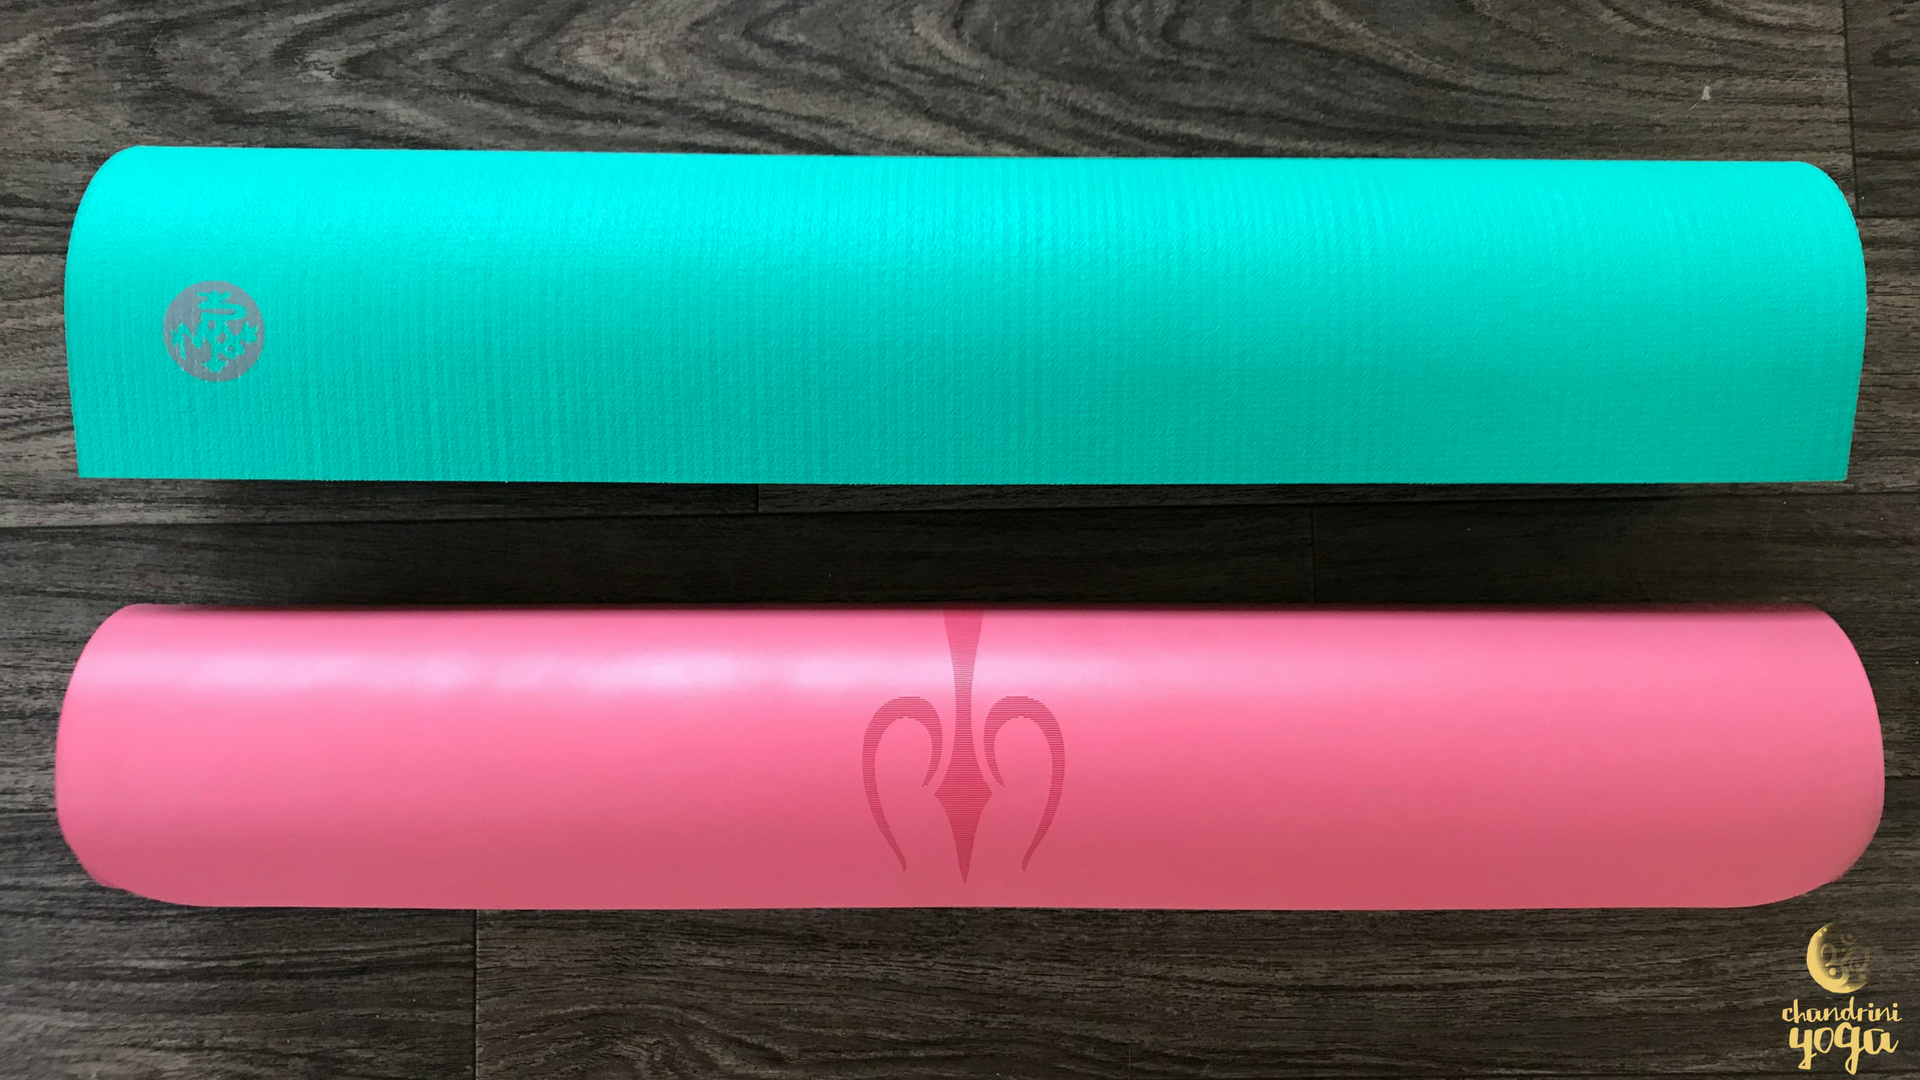 (Manduka PRO Oceana [limited edition color] , and Liforme Yoga Mat in Pink)